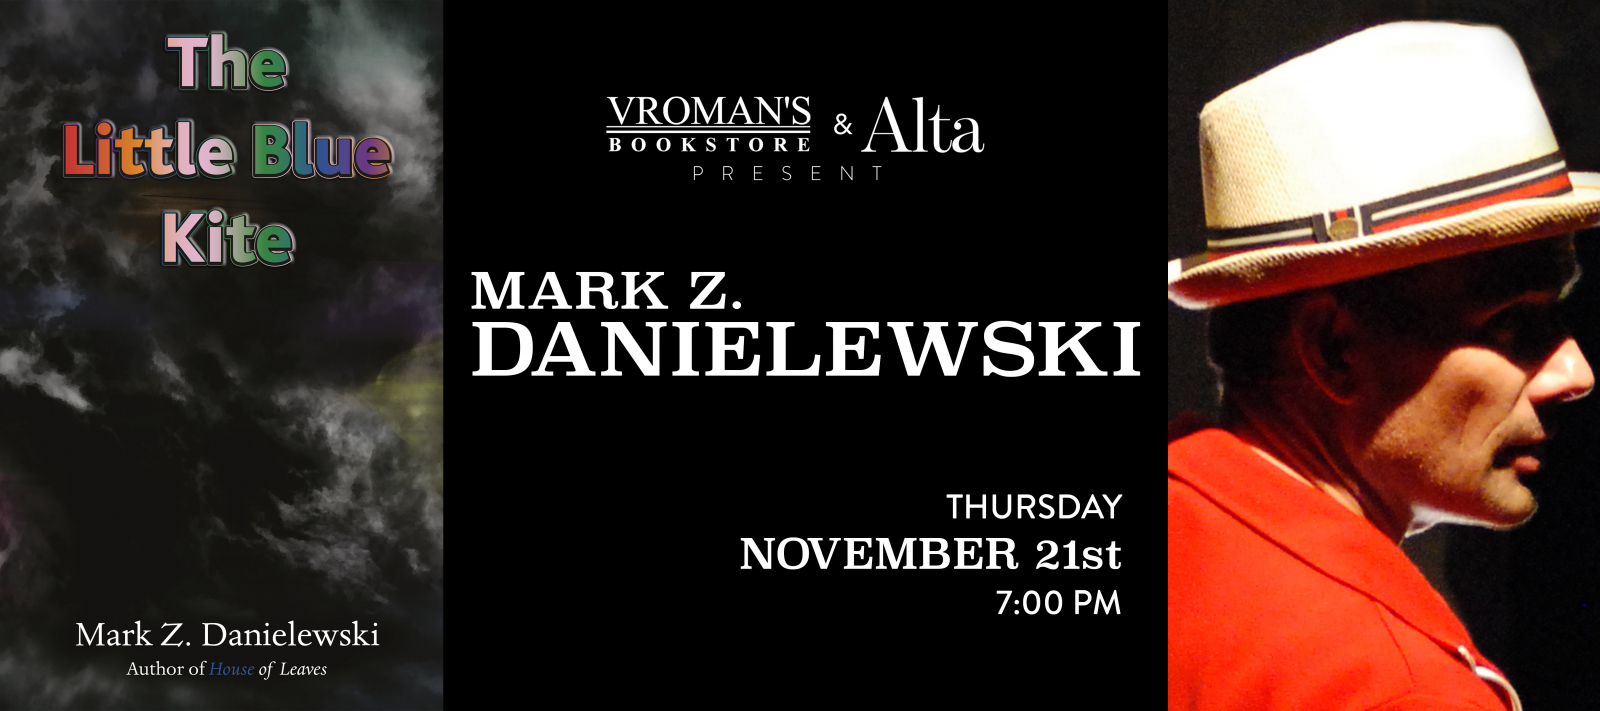 book signing with Mark Z. Danielewski Thursday November 21 at 7pm